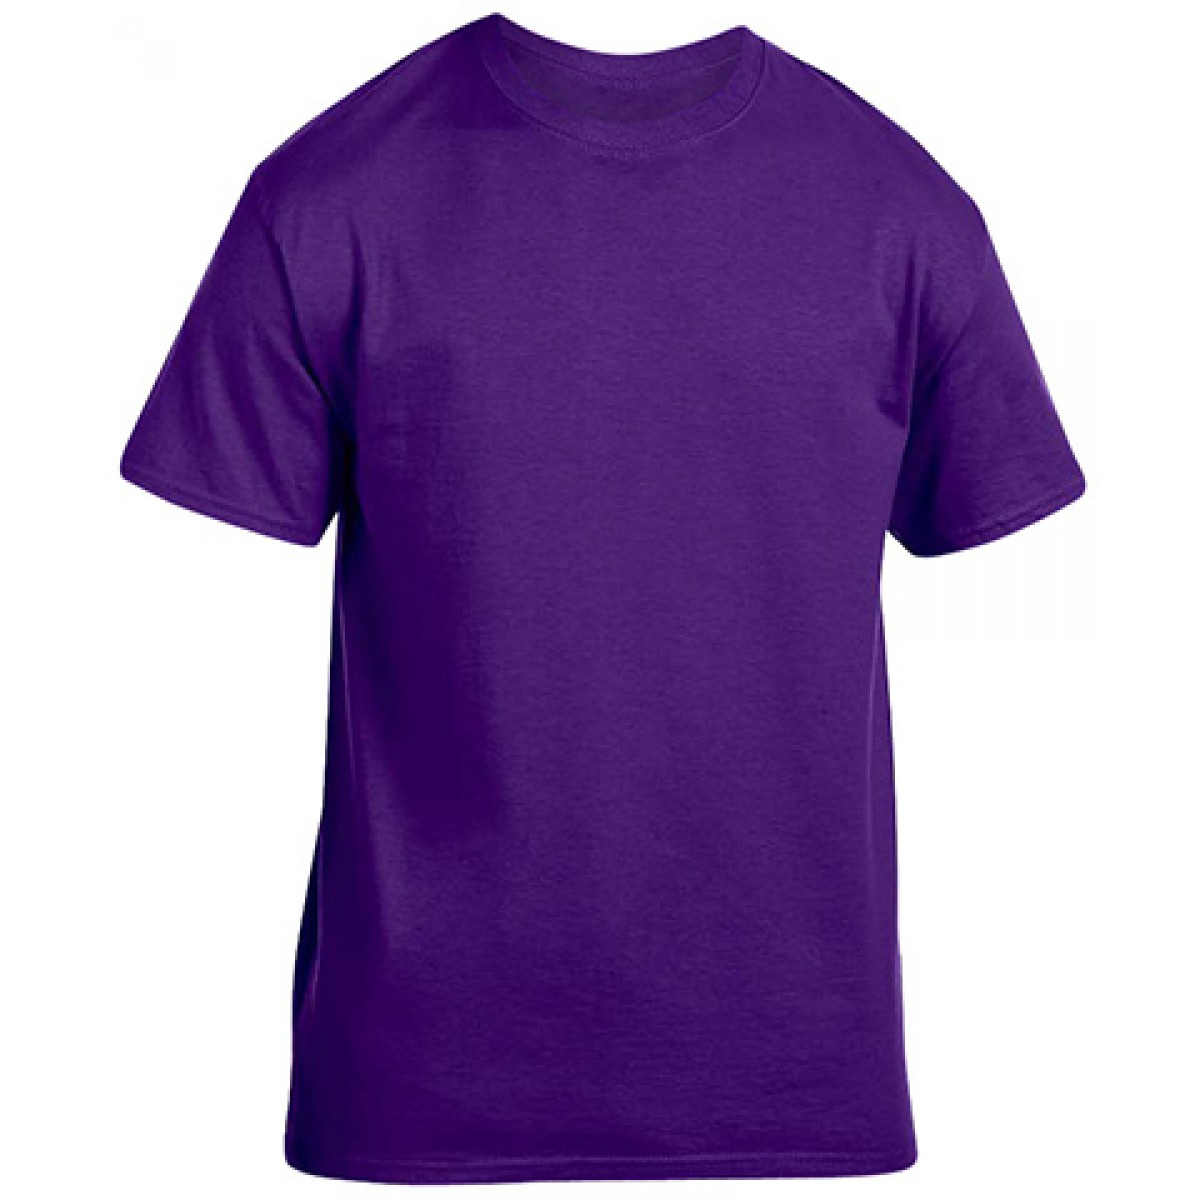 Soft 100% Cotton T-Shirt-Purple-M